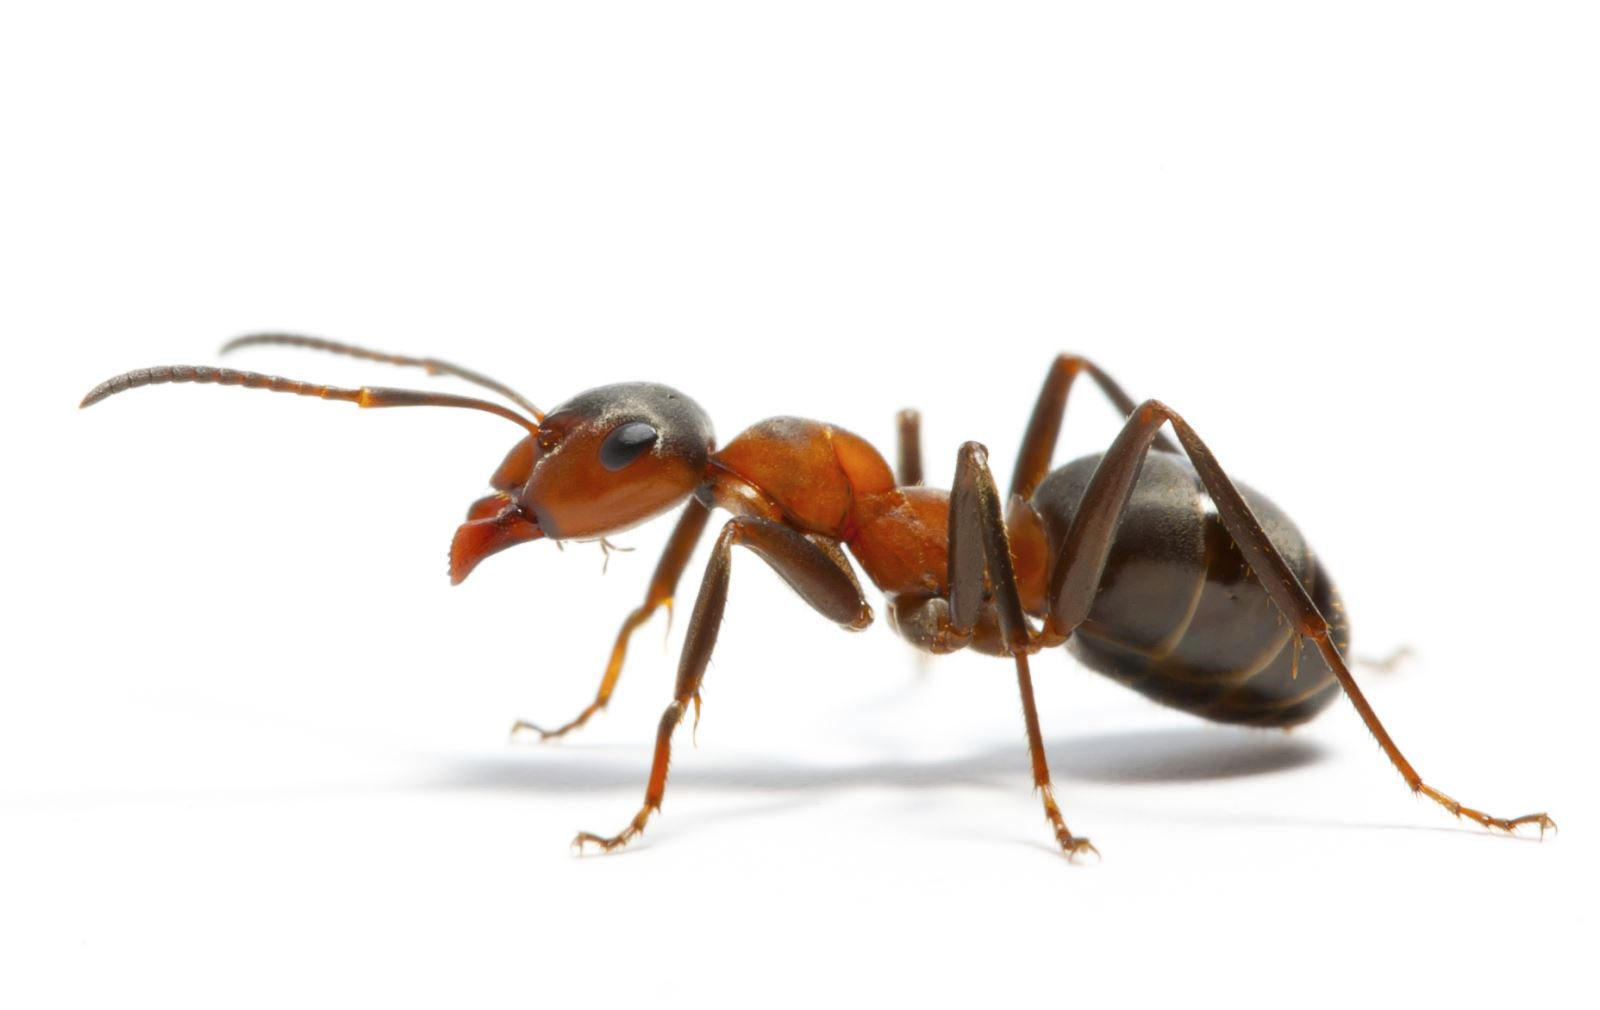 An ant walking on a surface